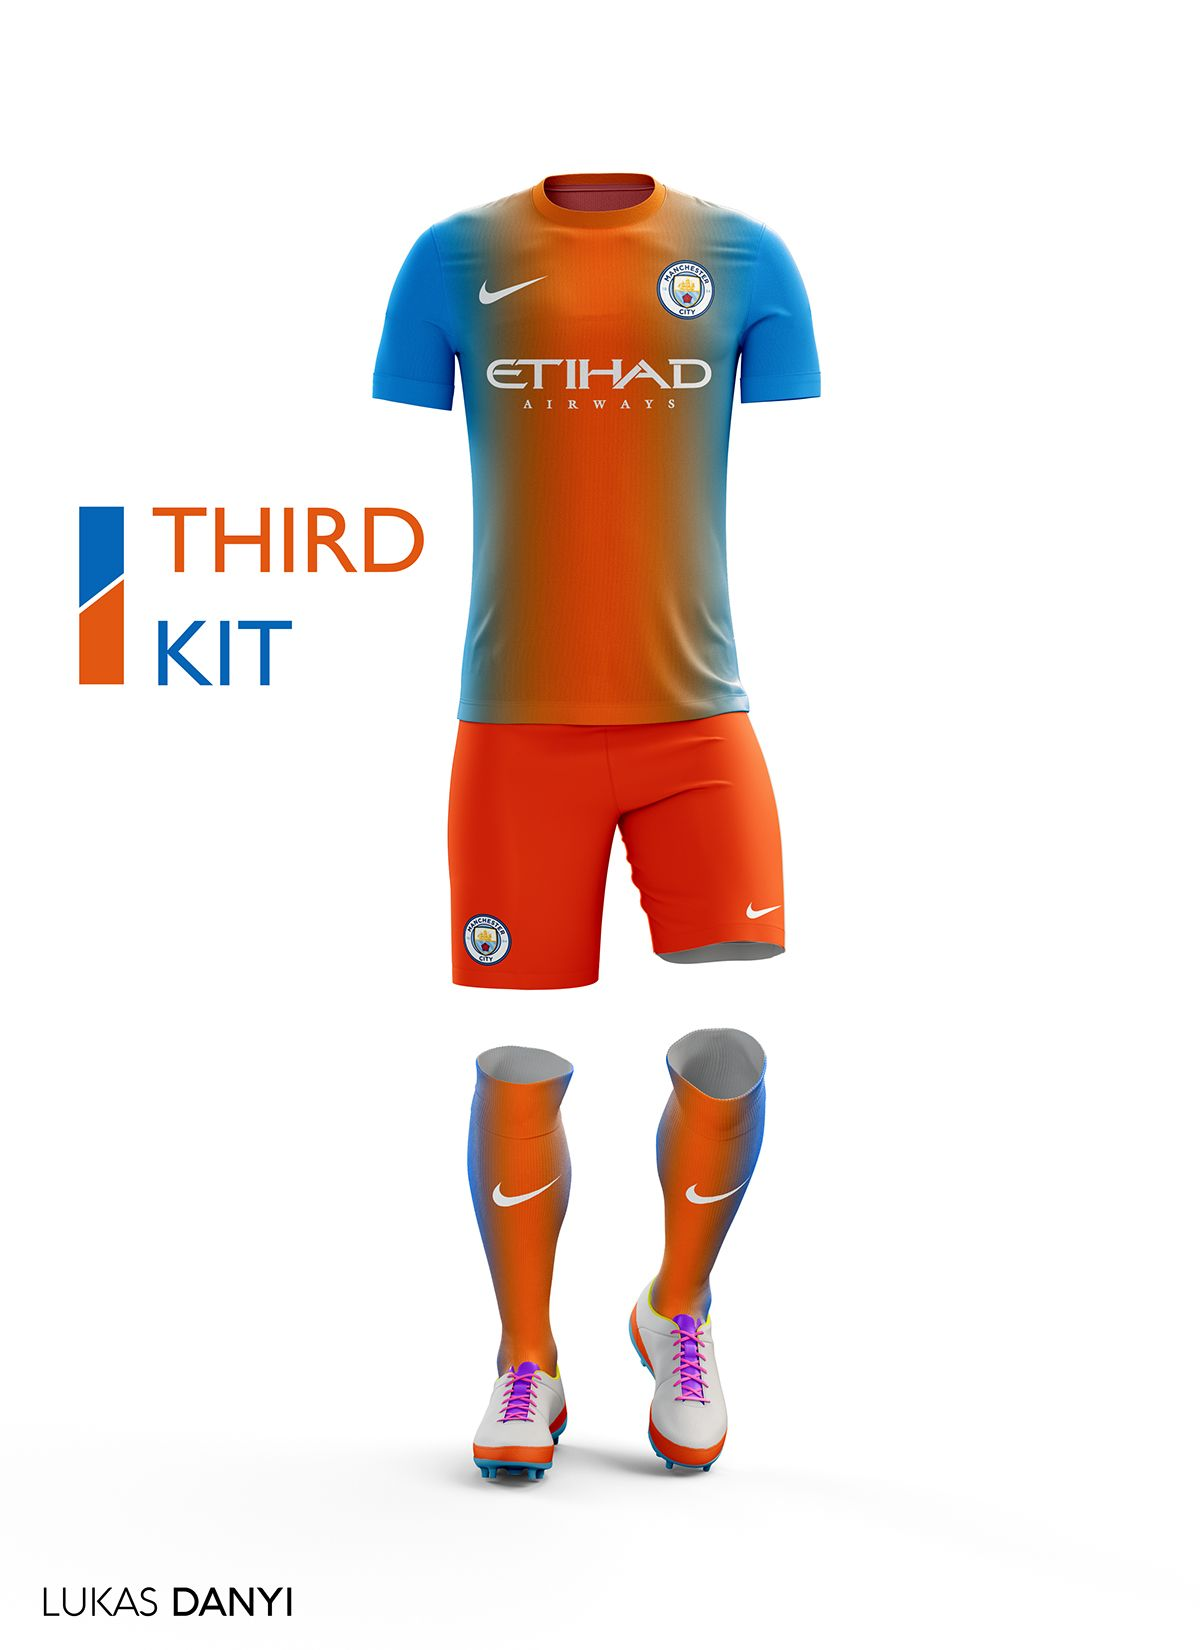 faaa2667c I designed football kits for Manchester City for the upcoming season  16 17.And I use the new logo.